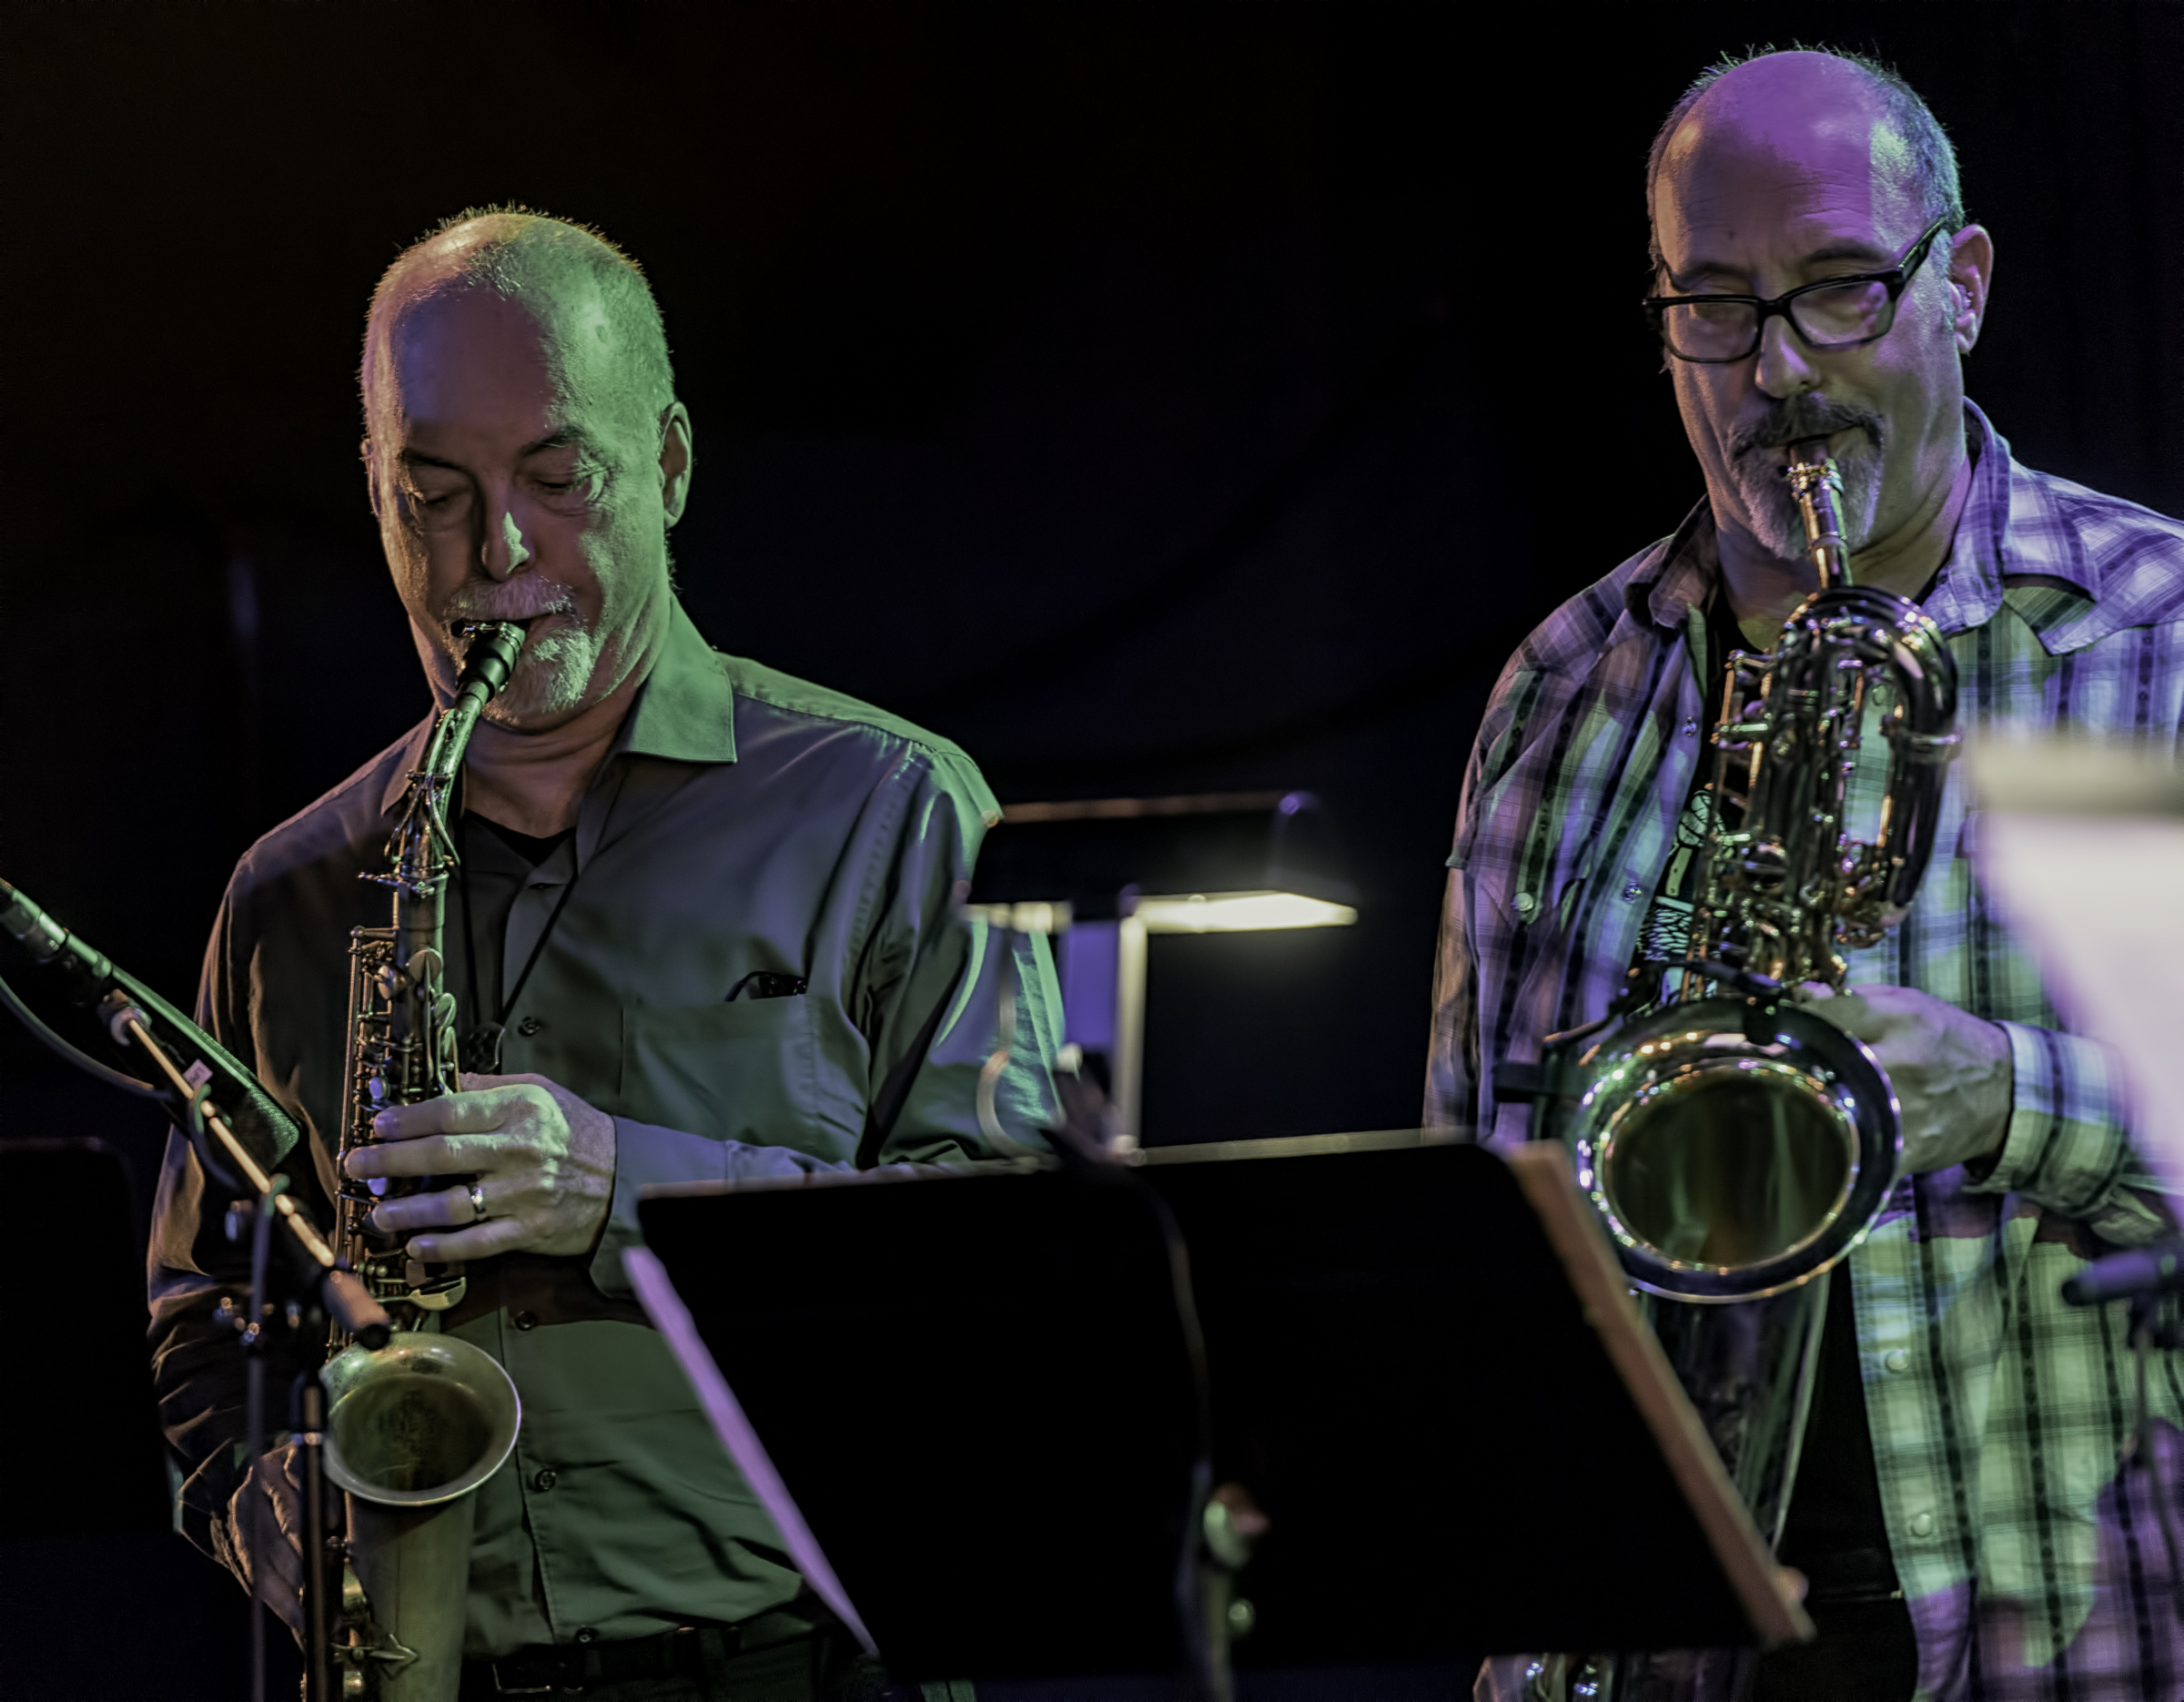 Steve Adams and Jon Raskin with Rova's Electric Ascension at the NYC Winter Jazzfest 2016